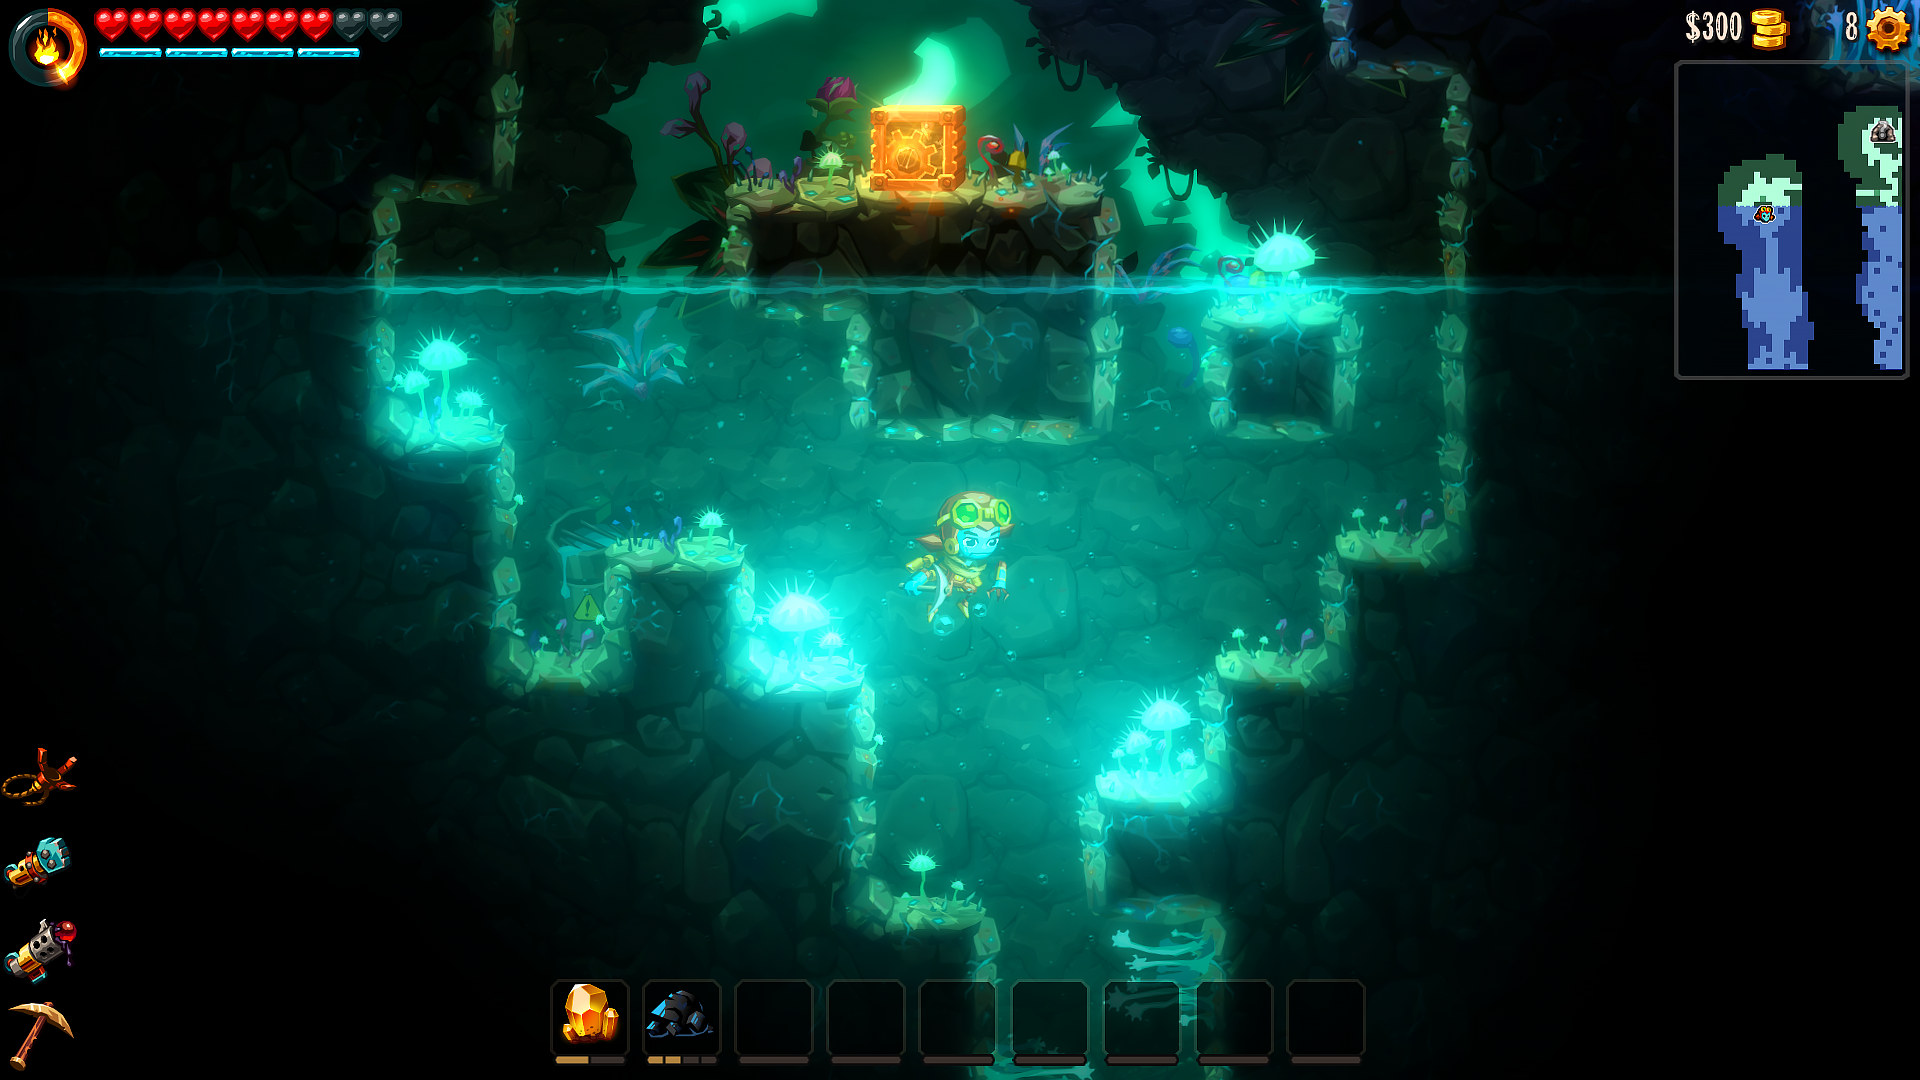 SteamWorld-Dig-2-Screenshot-9.png